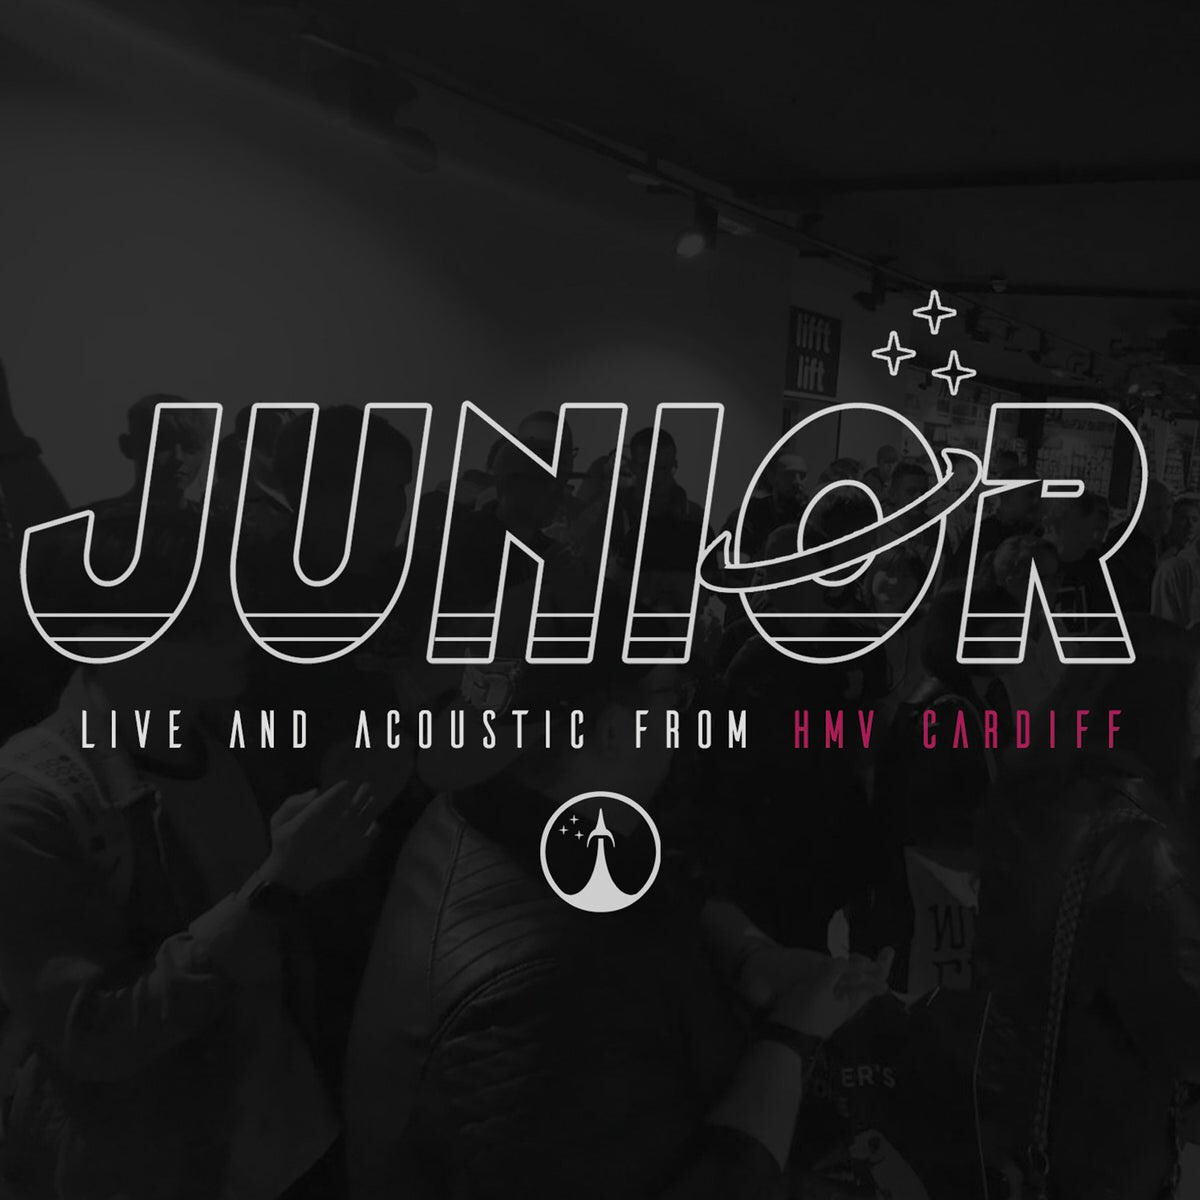 Our new 'Live and Acoustic' EP is available now! Give it a spin.Matt plays piano, we actually try to sing in tune. Real wholesome stuff, guys  https://open.spotify.com/album/7CBmbty0hJ7D9zNpYVwiQh?si=zt1cynK5QvuFiANXaH6xdA…